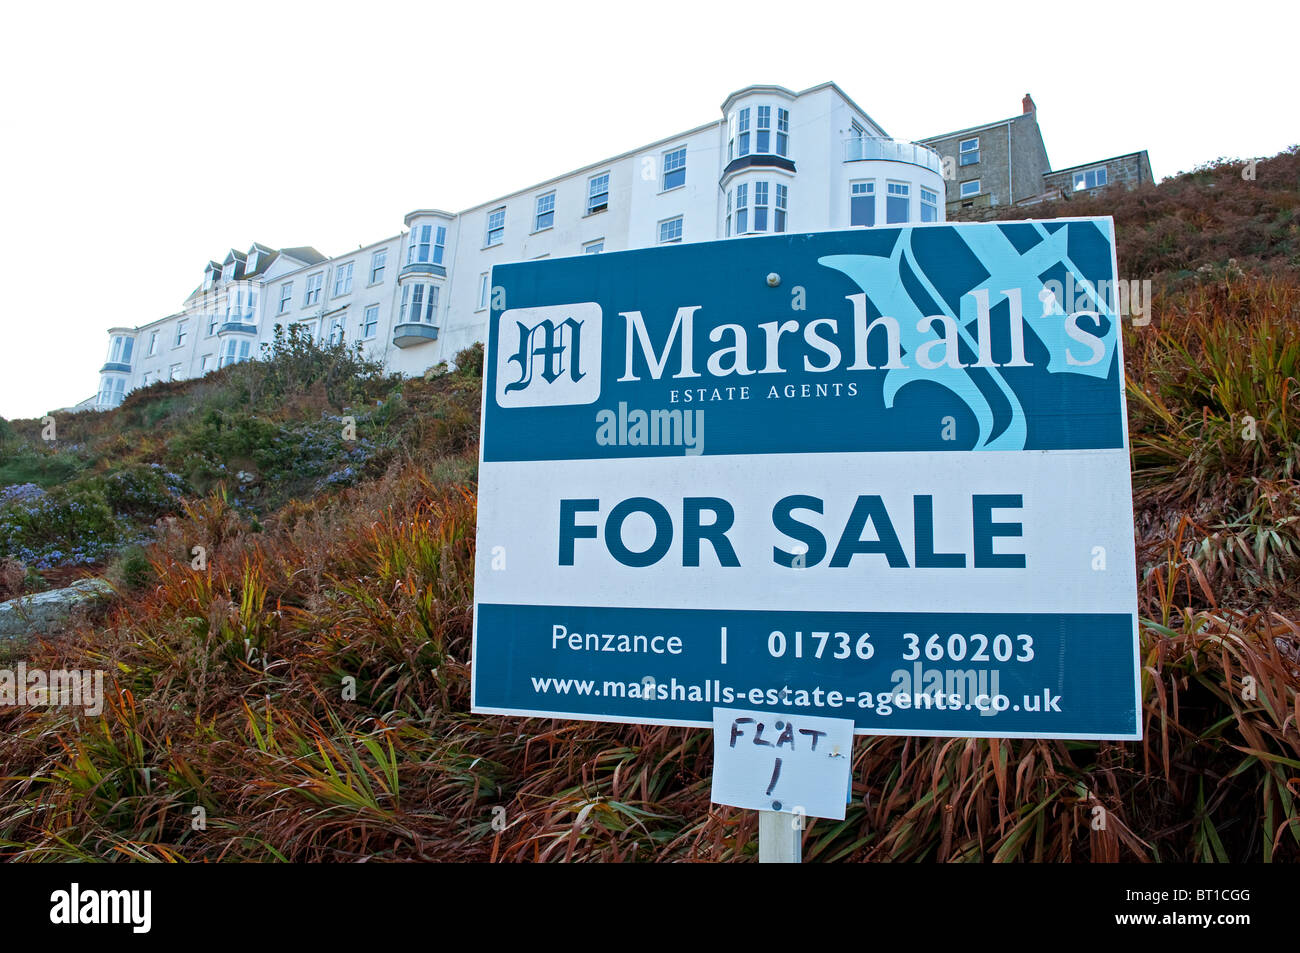 a flat for sale sign at sennen cove in cornwall, uk - Stock Image